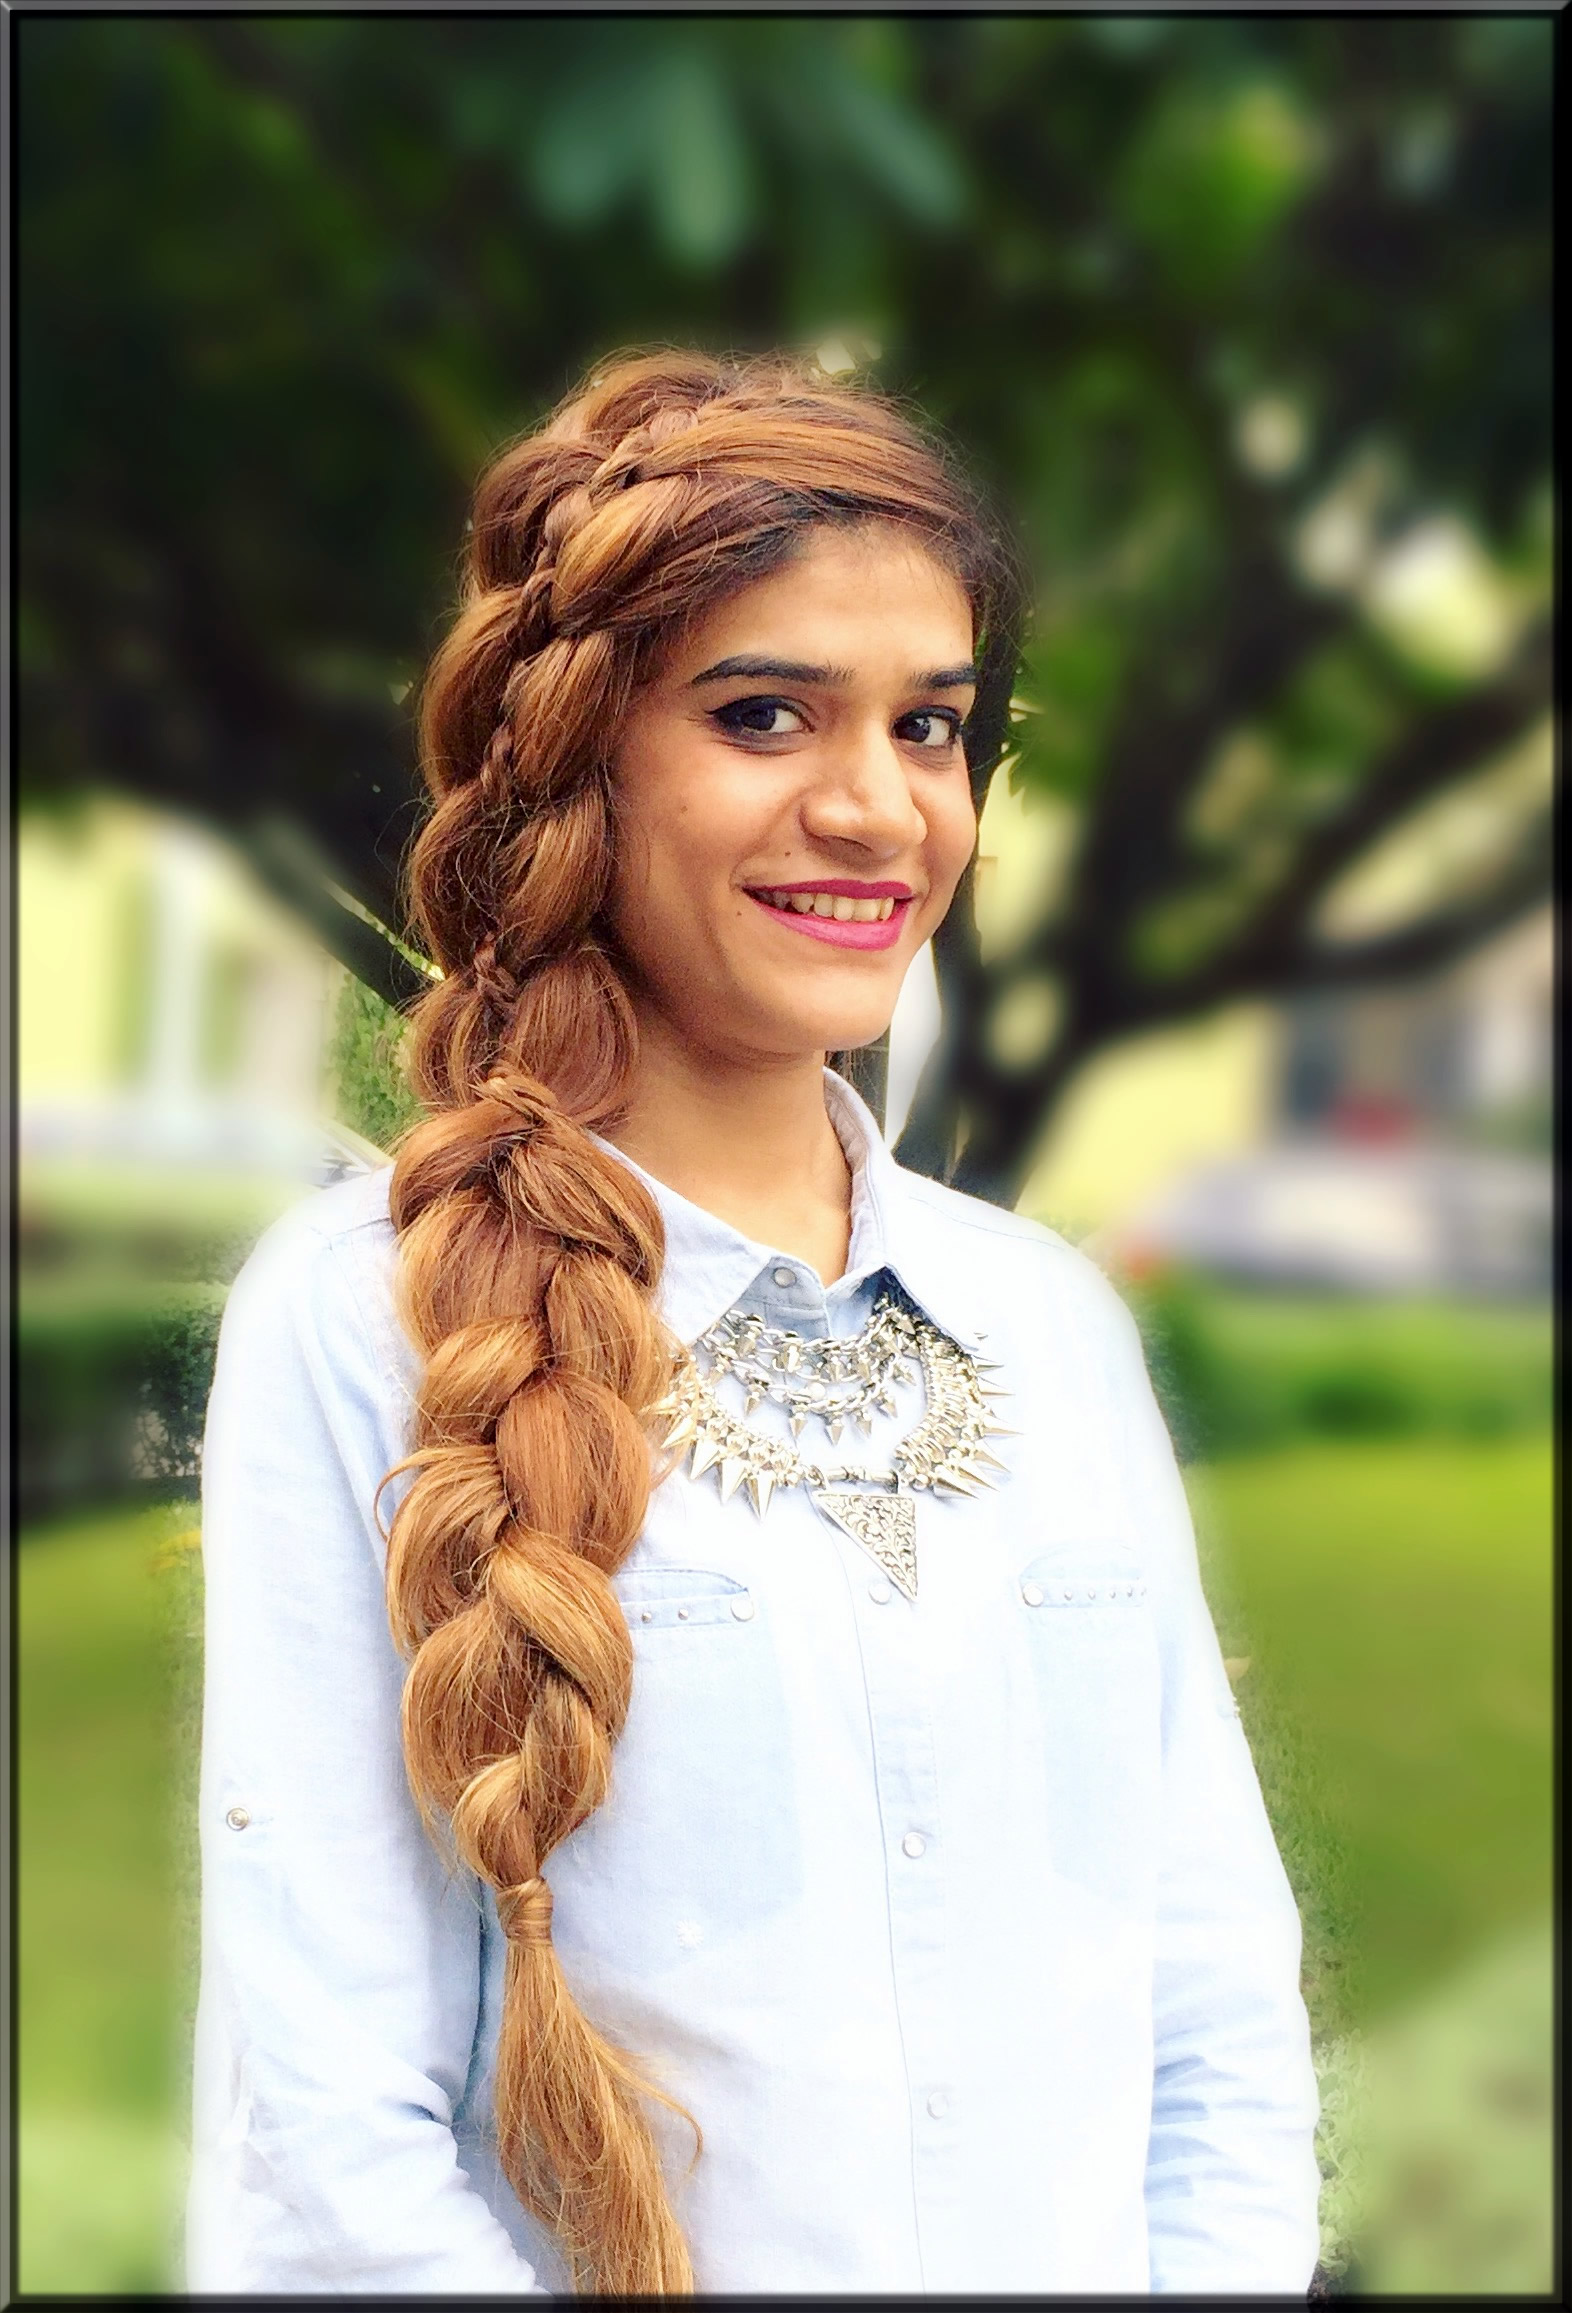 4 Strand Braid hairstyle for girls